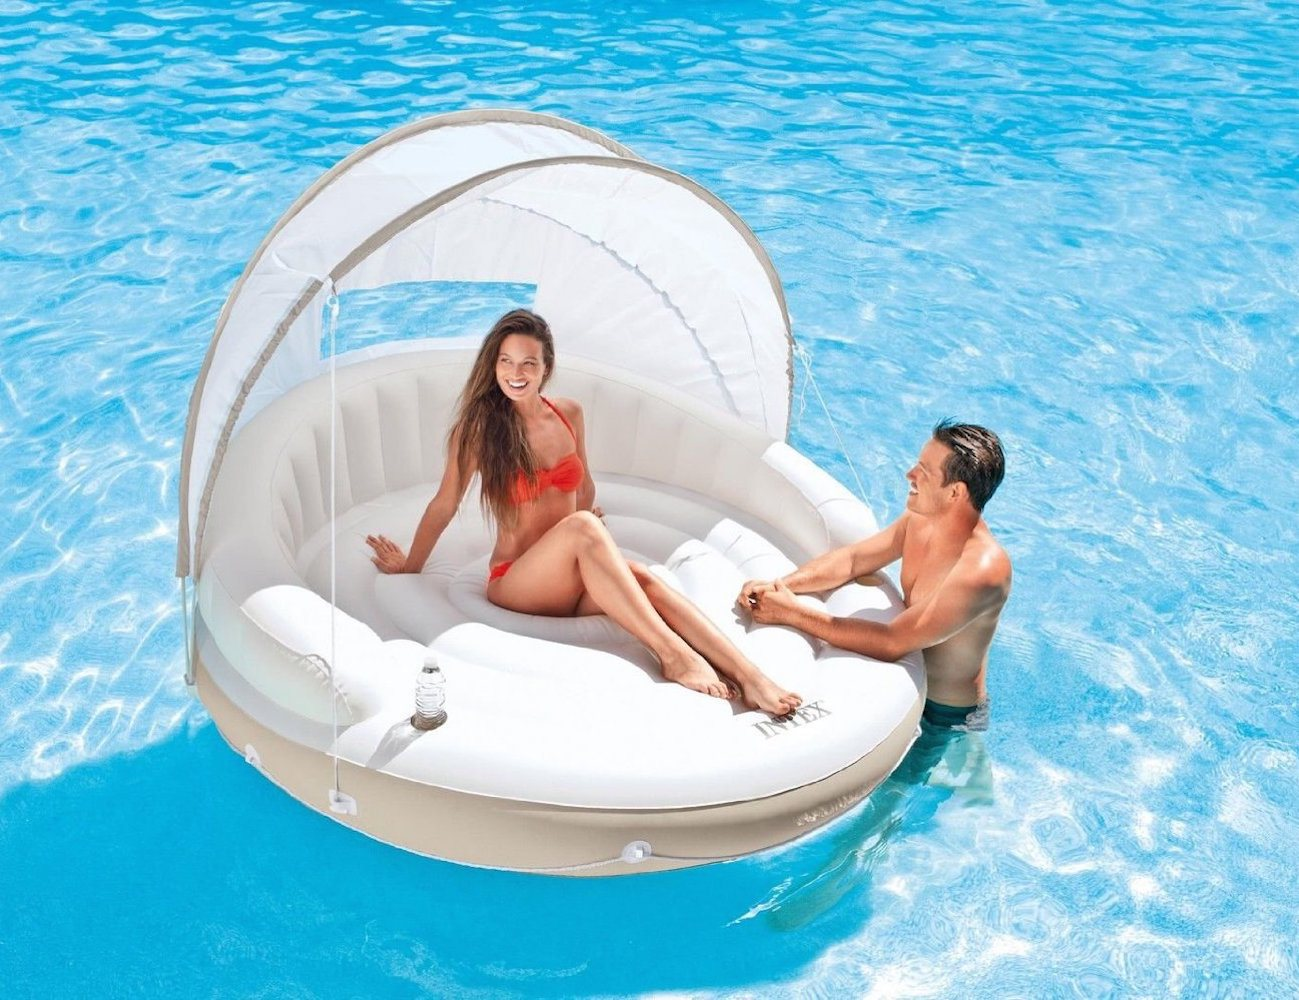 Canopy Island – Inflatable Water Lounge Raft by Intex